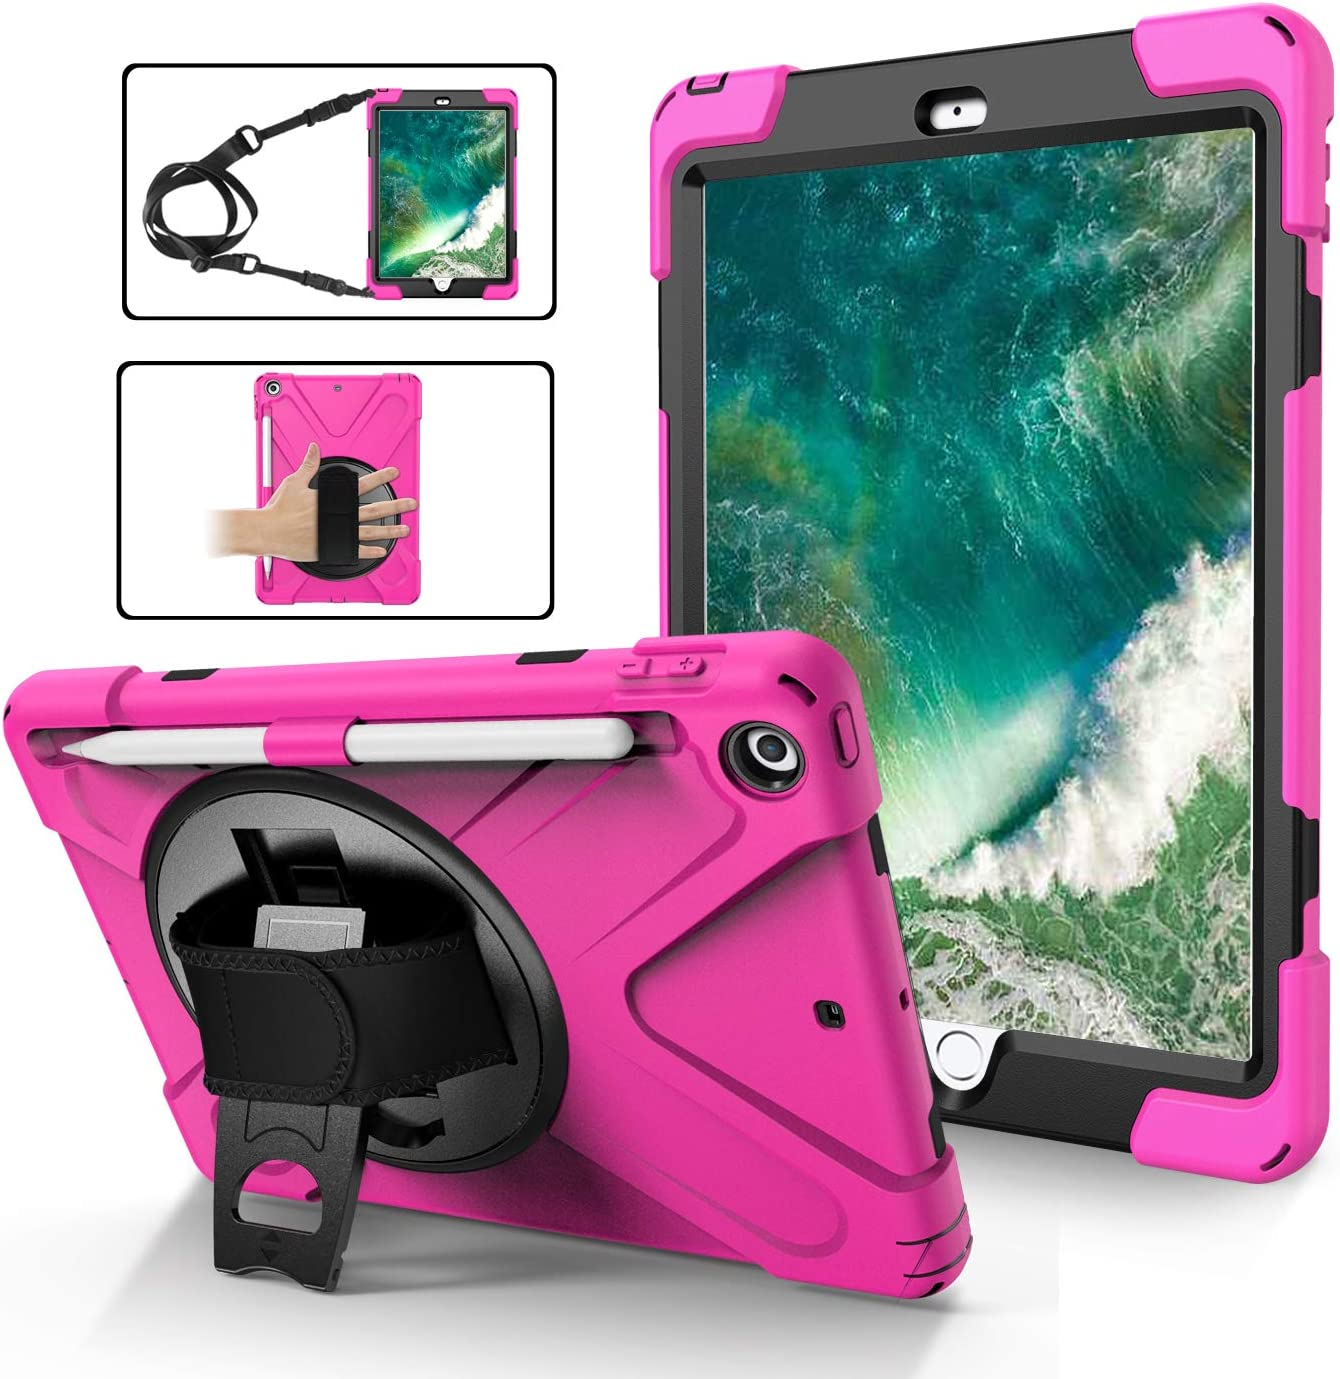 iPad Case 9.7 Inch for Kids 2018/2017 | TSQ 6th Generation iPad Case Heavy Duty Drop Protection PC Case with Rotating Kickstand/Hand Strap+Shoulder Strap+Pen Holder for iPad 5th Generation | Rose Red